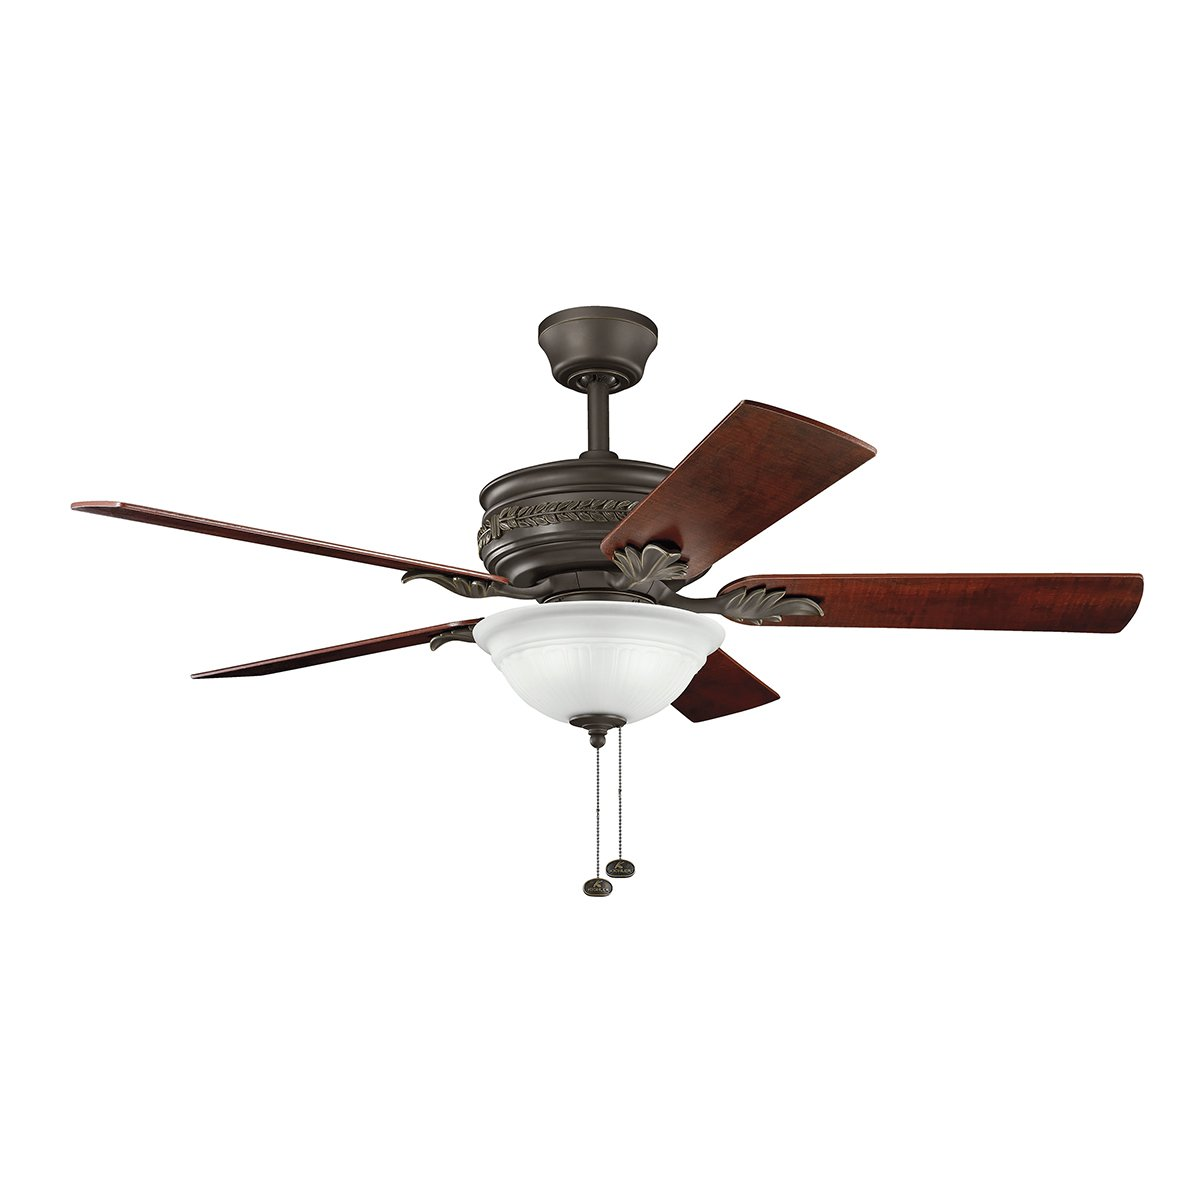 Kichler Lighting 300158SNB Athens 52 Inch Ceiling Fan, Satin Natural Bronze  Finish With Reversible Walnut/Lipplewood Blades And Etched Opal Light Kit  ...